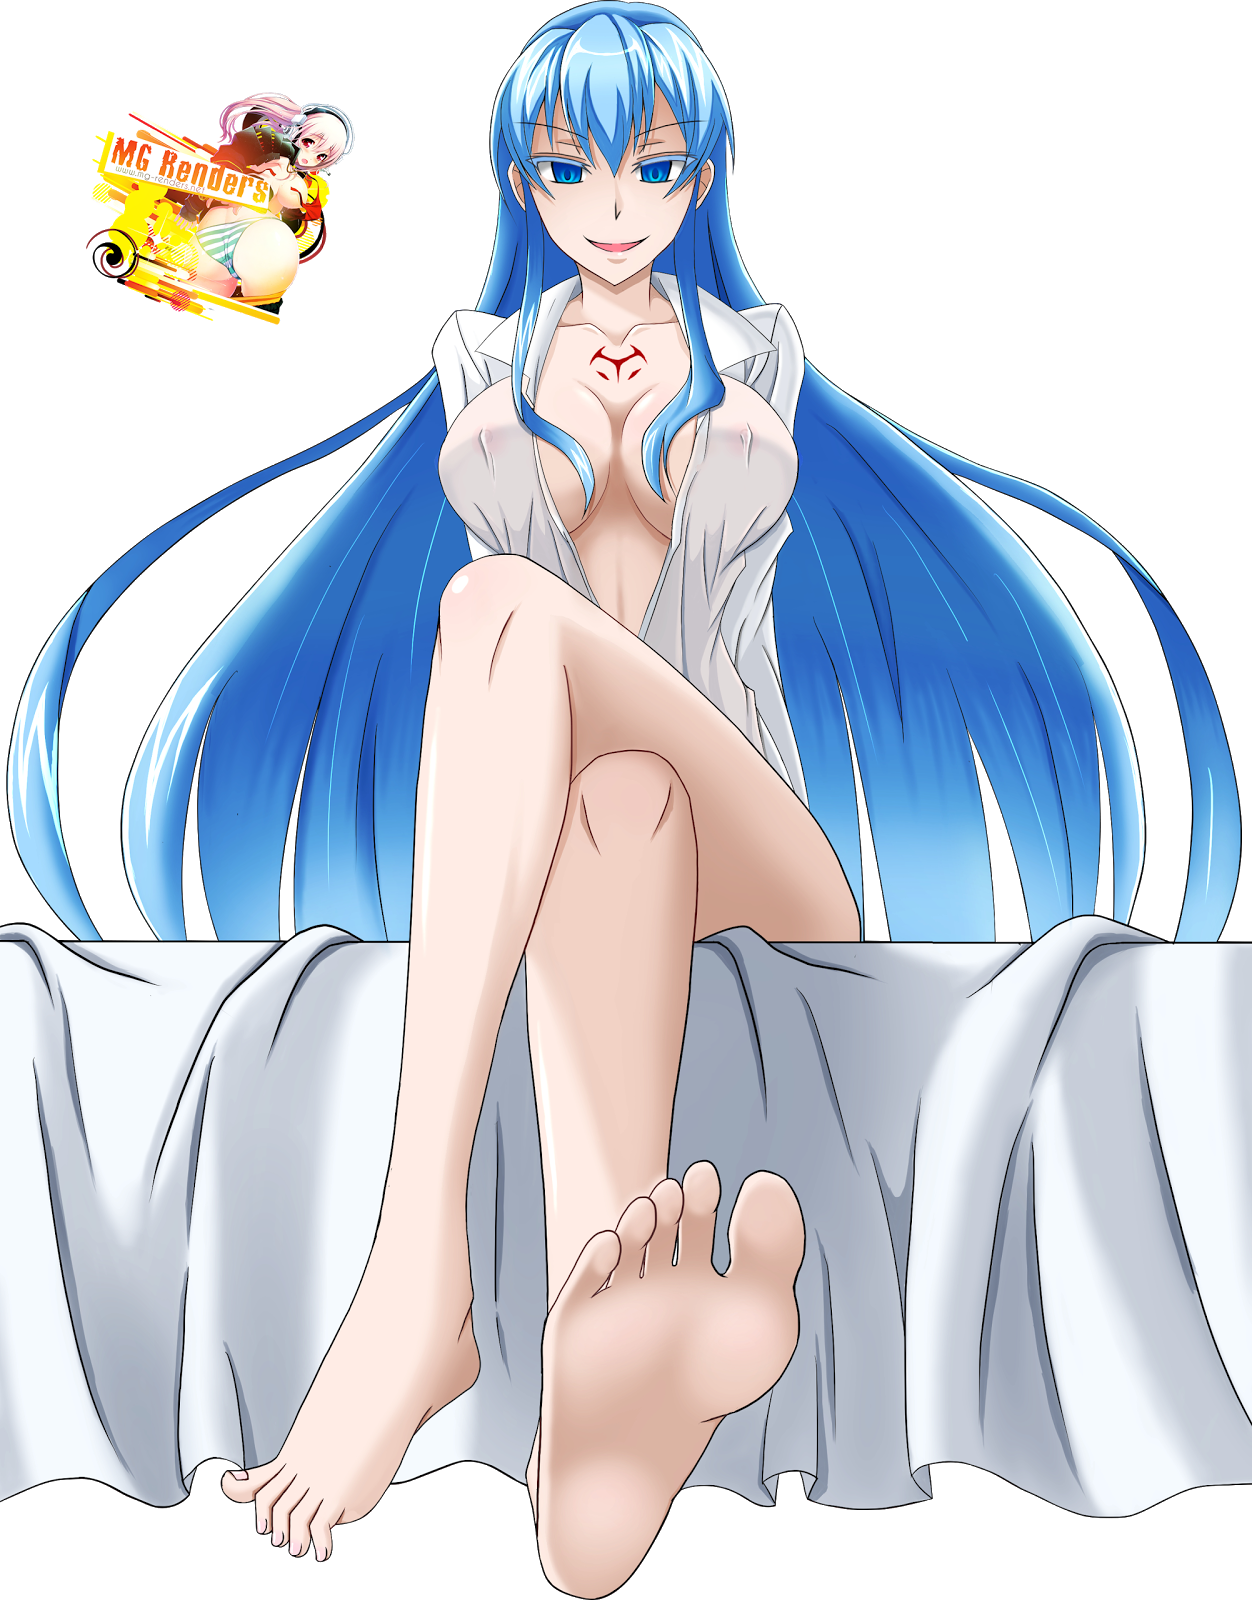 Tags: Anime, Render,  Akame Ga Kill!,  Crossed Legs,  Esdese,  Feet,  Toes,  PNG, Image, Picture